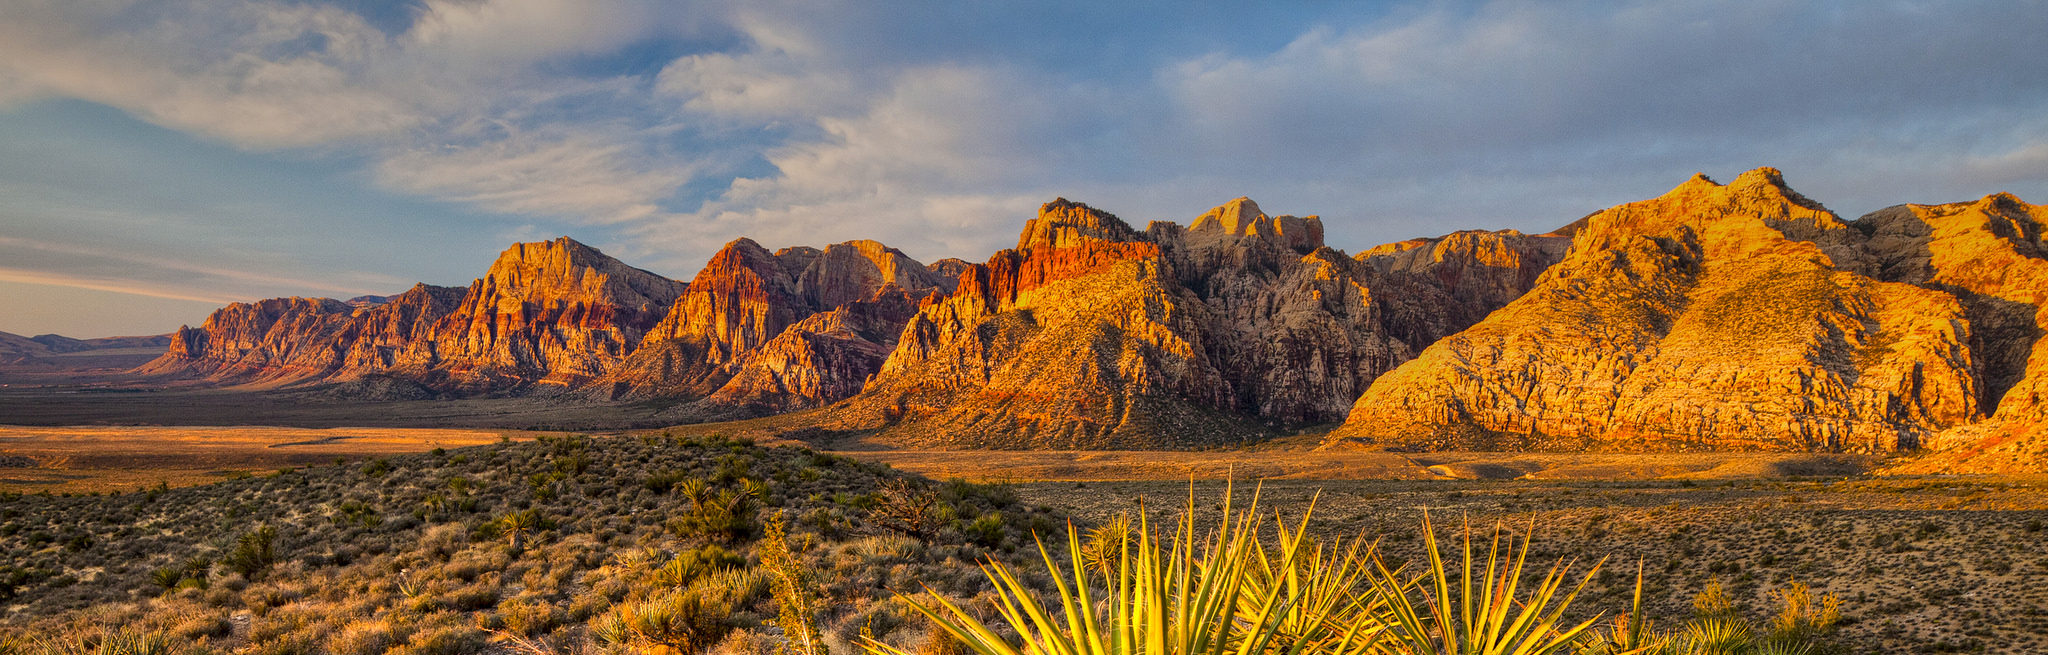 Sunset on Red Rocks. The hills are illuminated gold and pink, while the foreground of sage and yucca glows yellow.